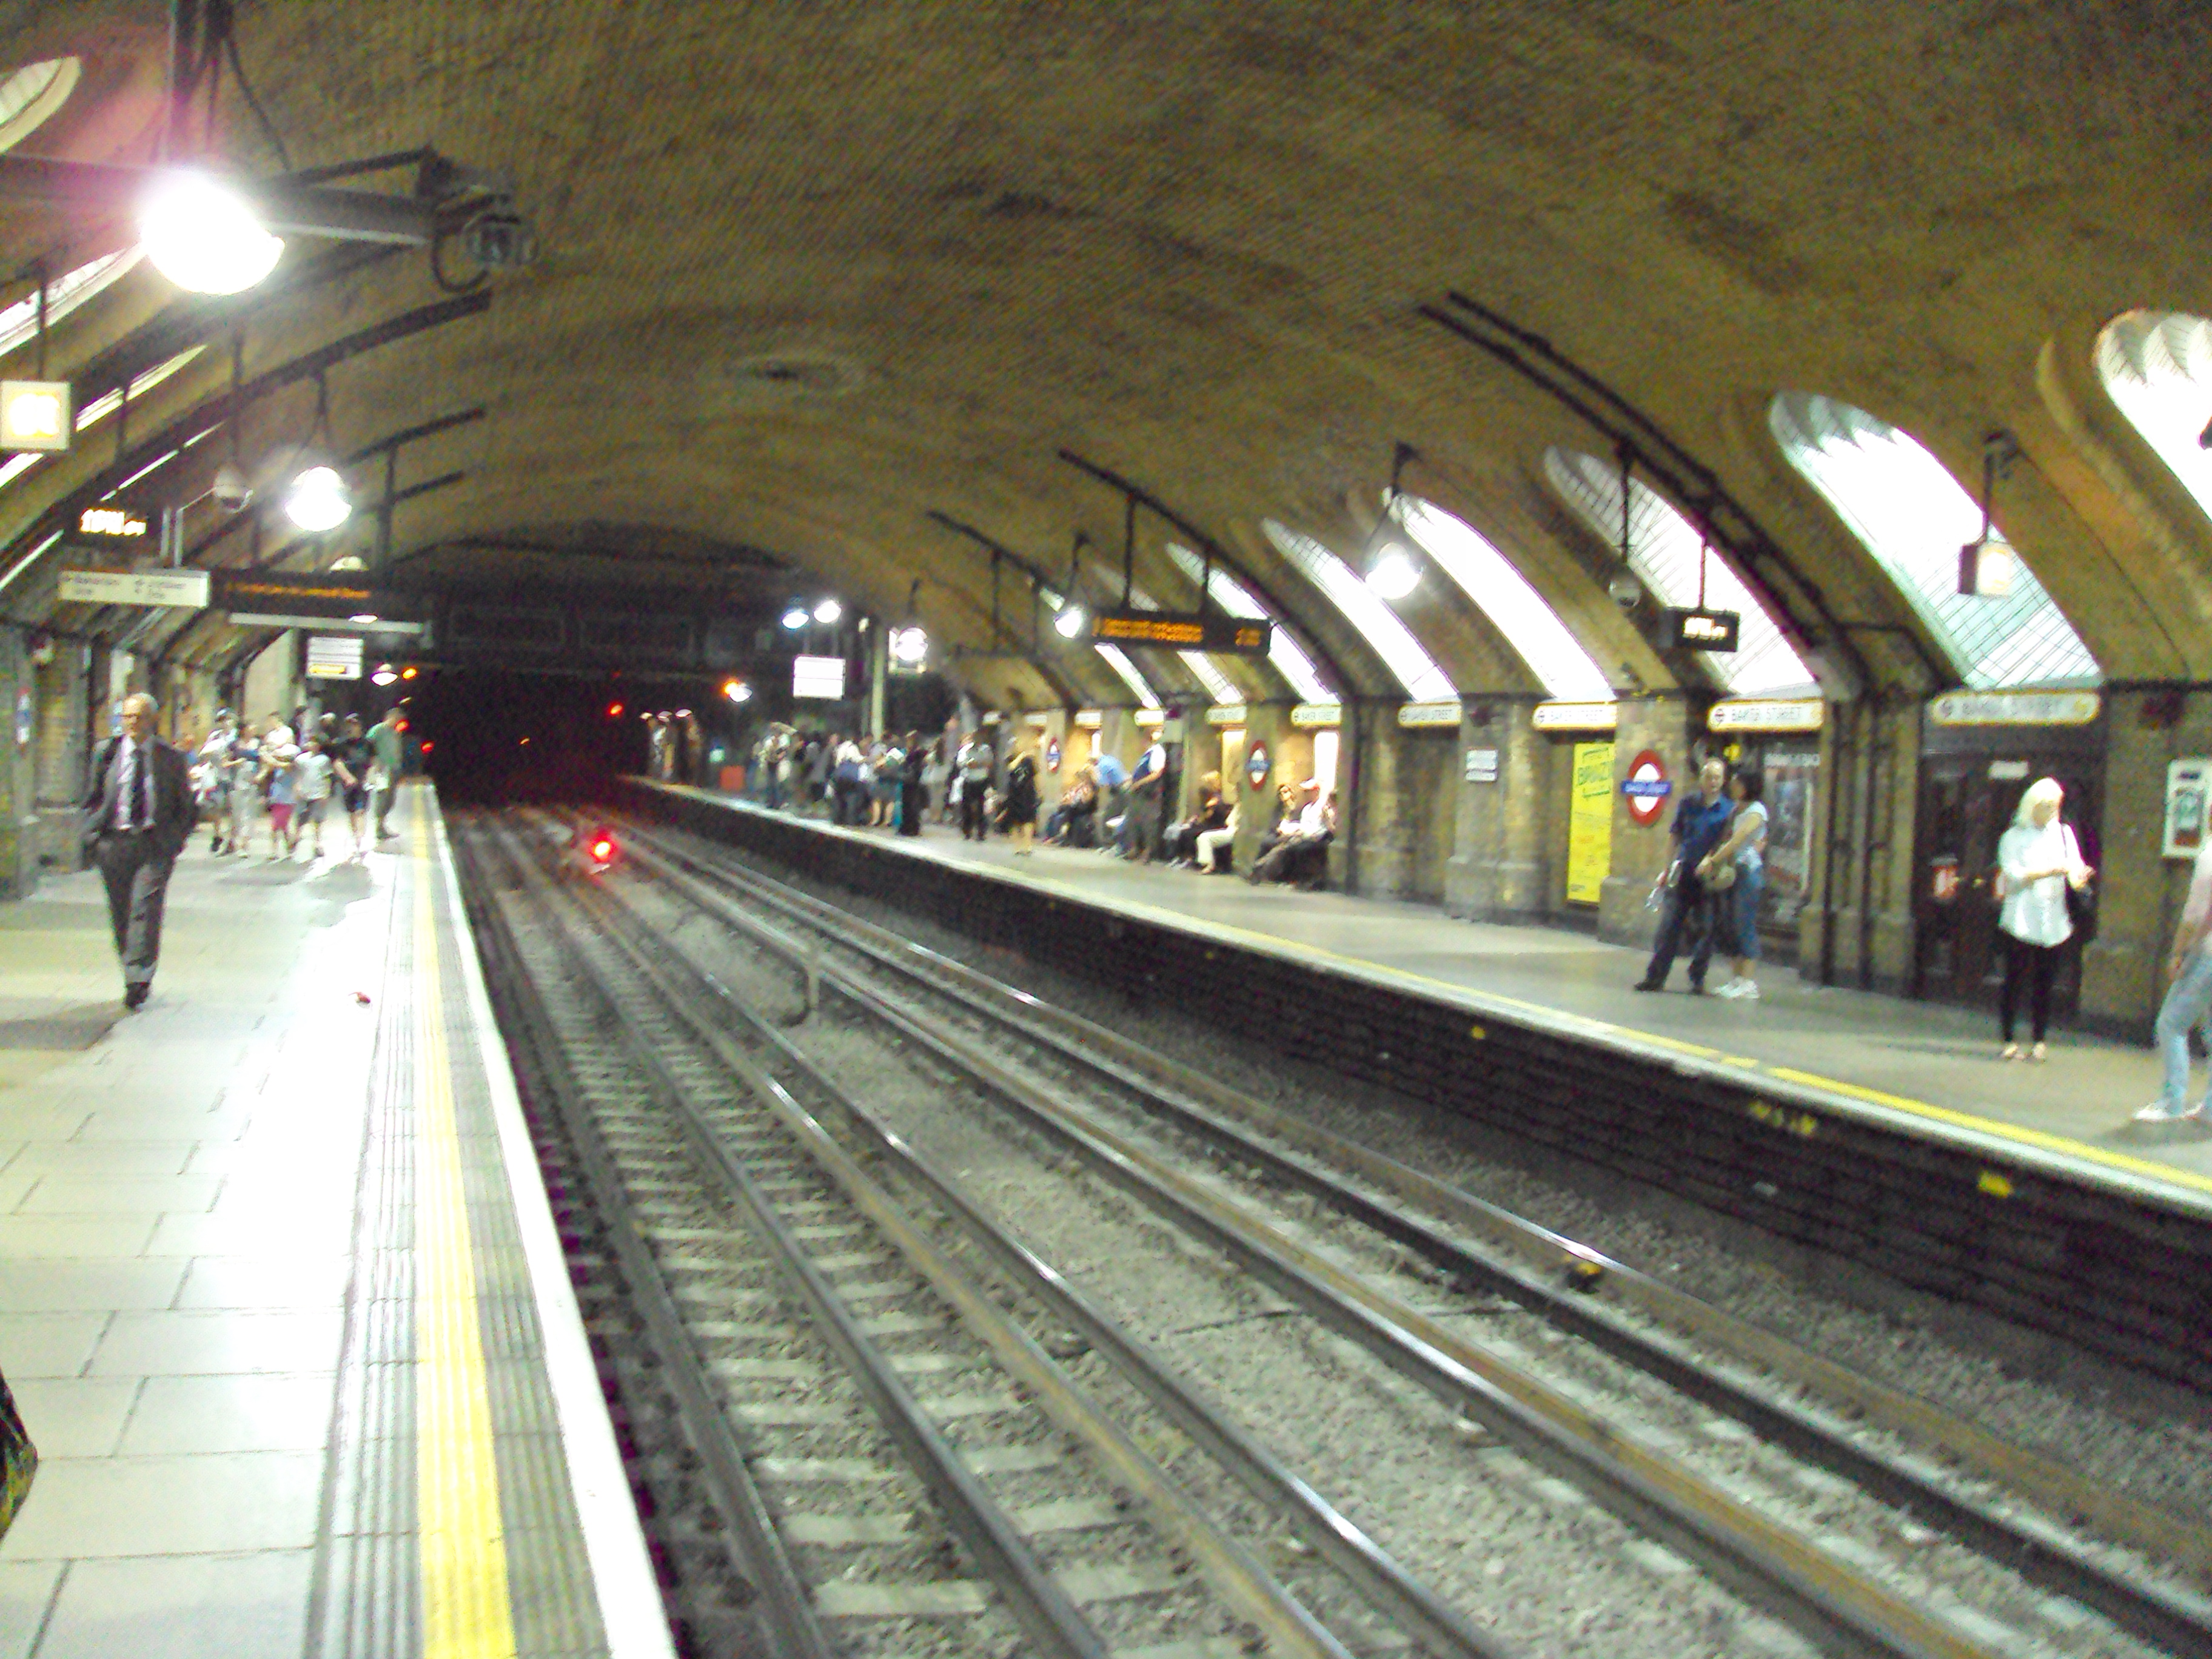 https://i1.wp.com/upload.wikimedia.org/wikipedia/commons/6/6c/Baker_Street_underground_station_-_DSC07030.JPG